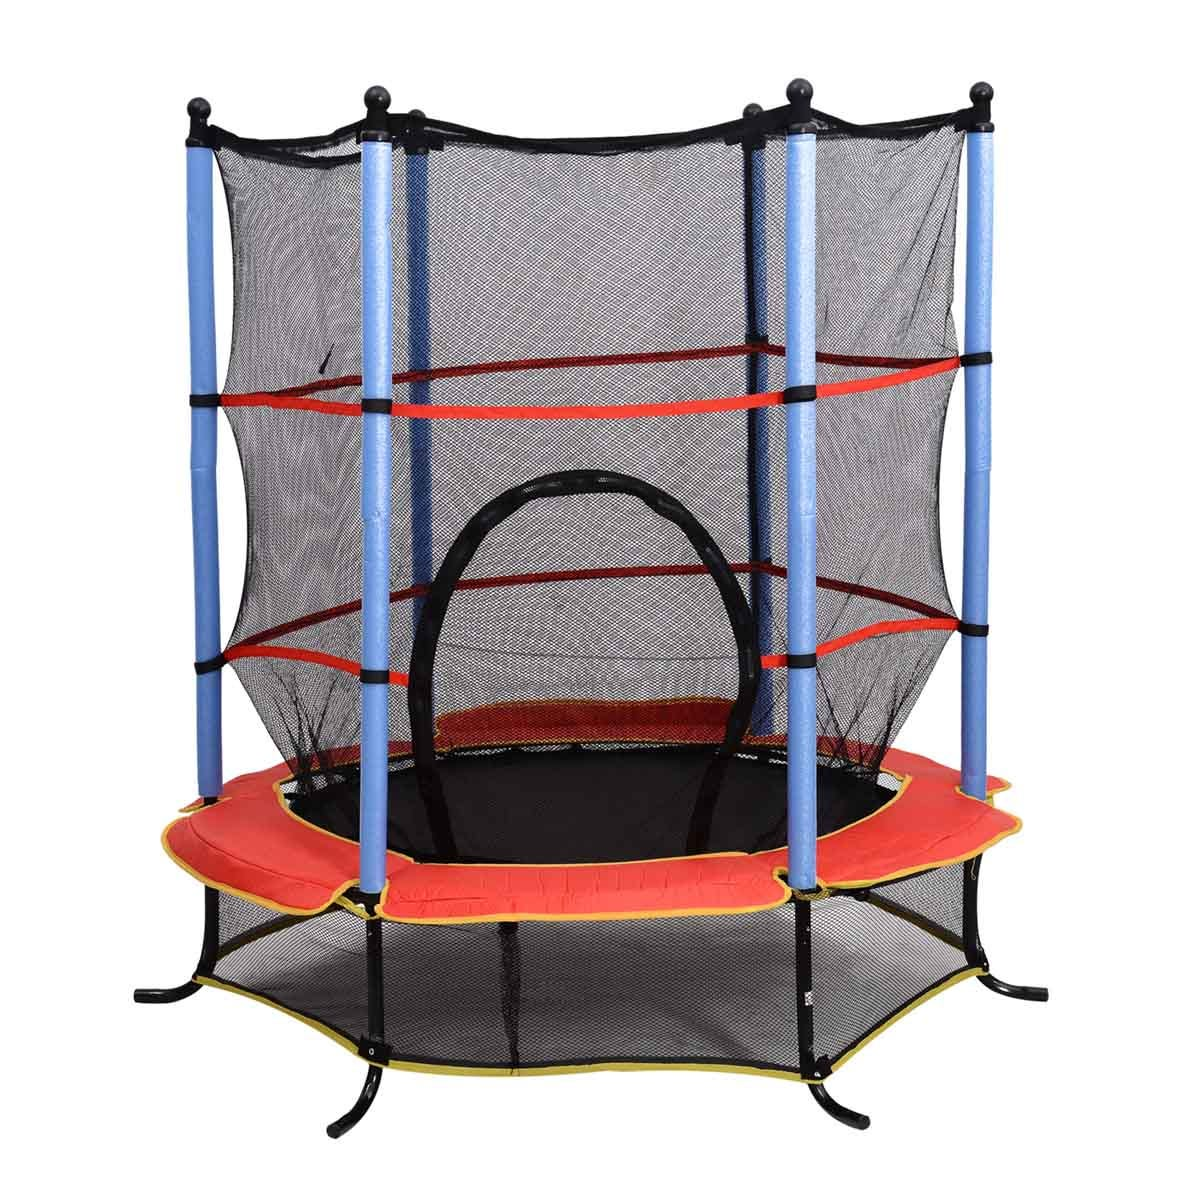 Jouet Childrens 4.5ft Trampoline with Enclosure Net